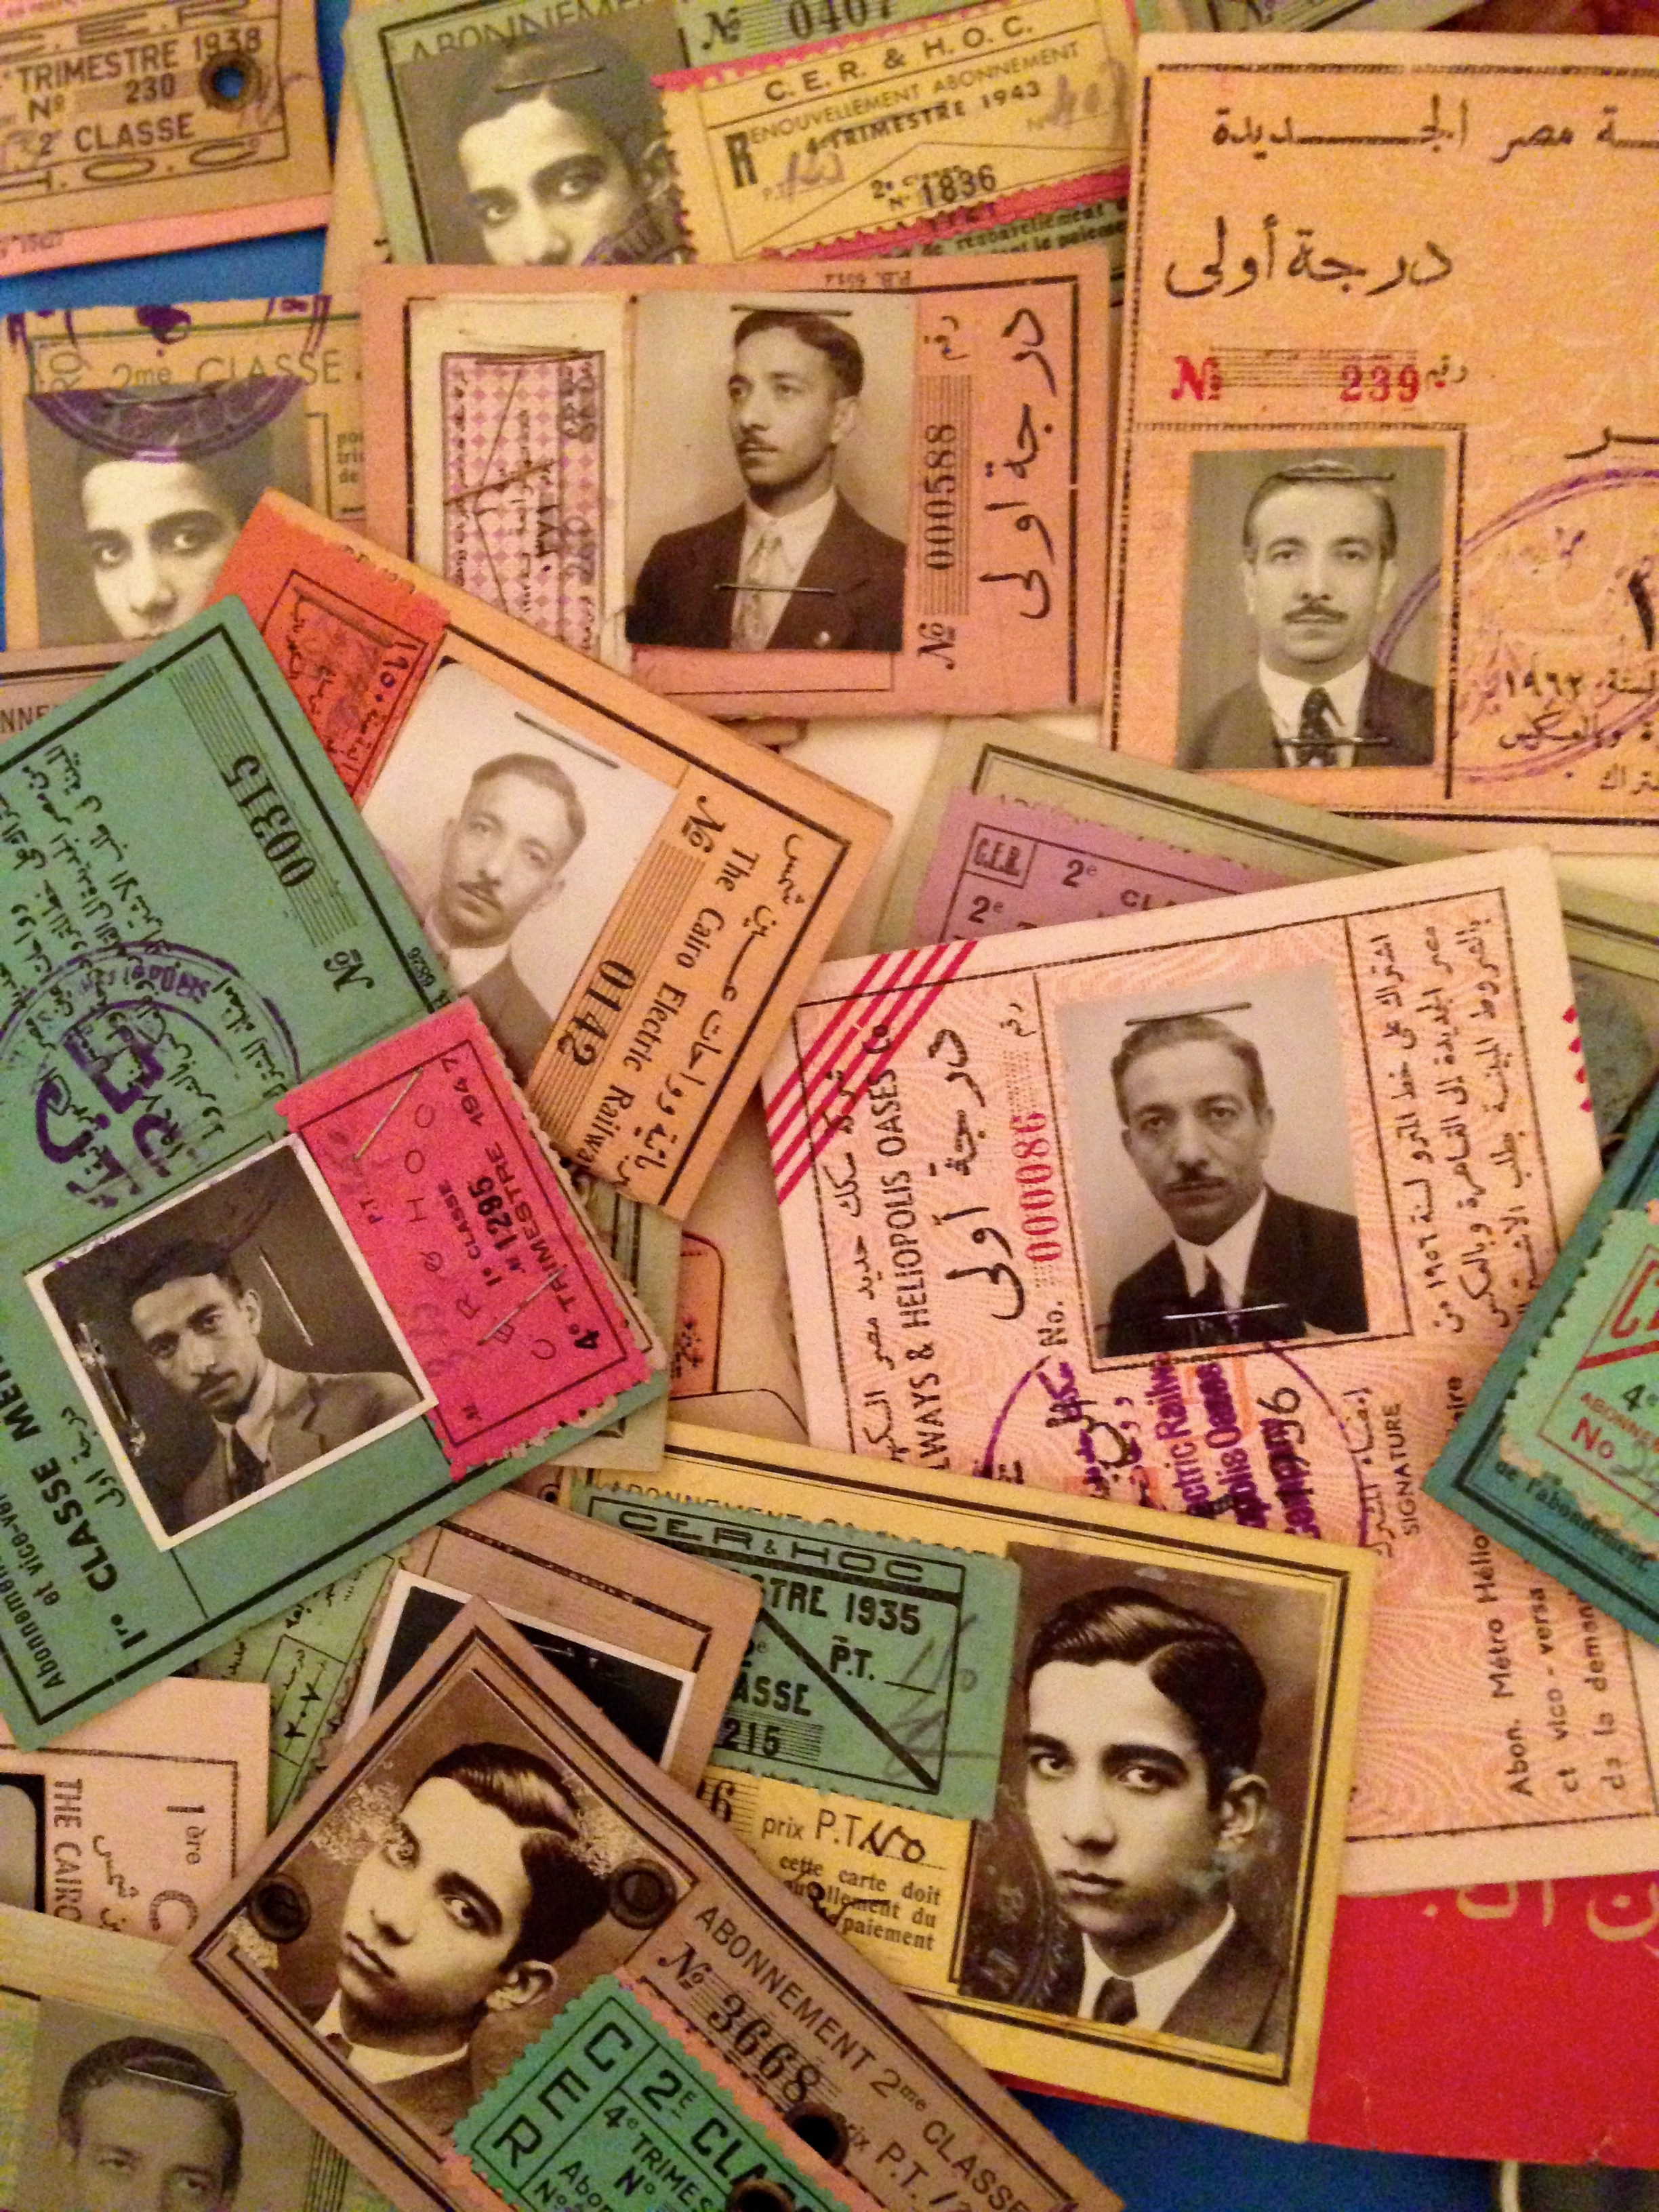 Mint condition bus passes, spawning decades, owned by one obsessive-compulsive Egyptian citizen, and now by my friend and collector Amgad Naguib.